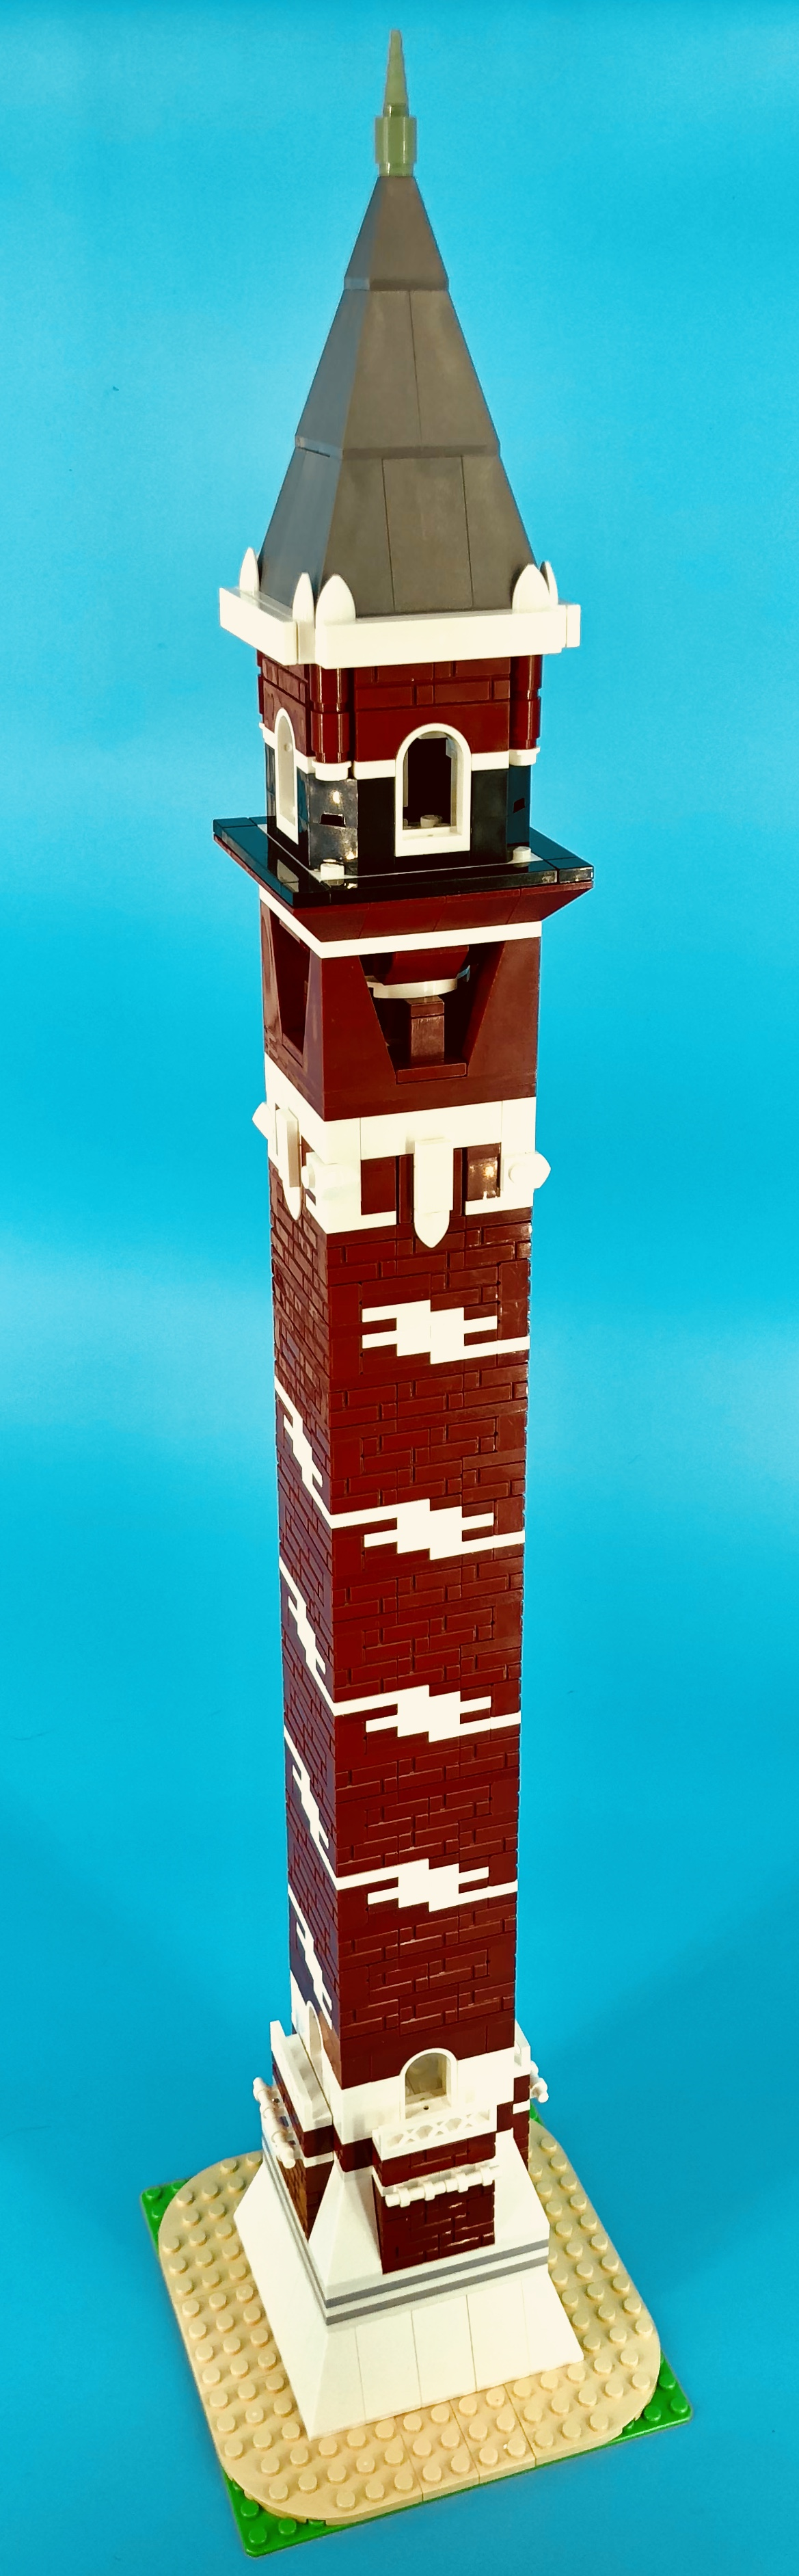 A MOC of the Bissell Street Water Tower shown off at the club's March 2018 meeting.